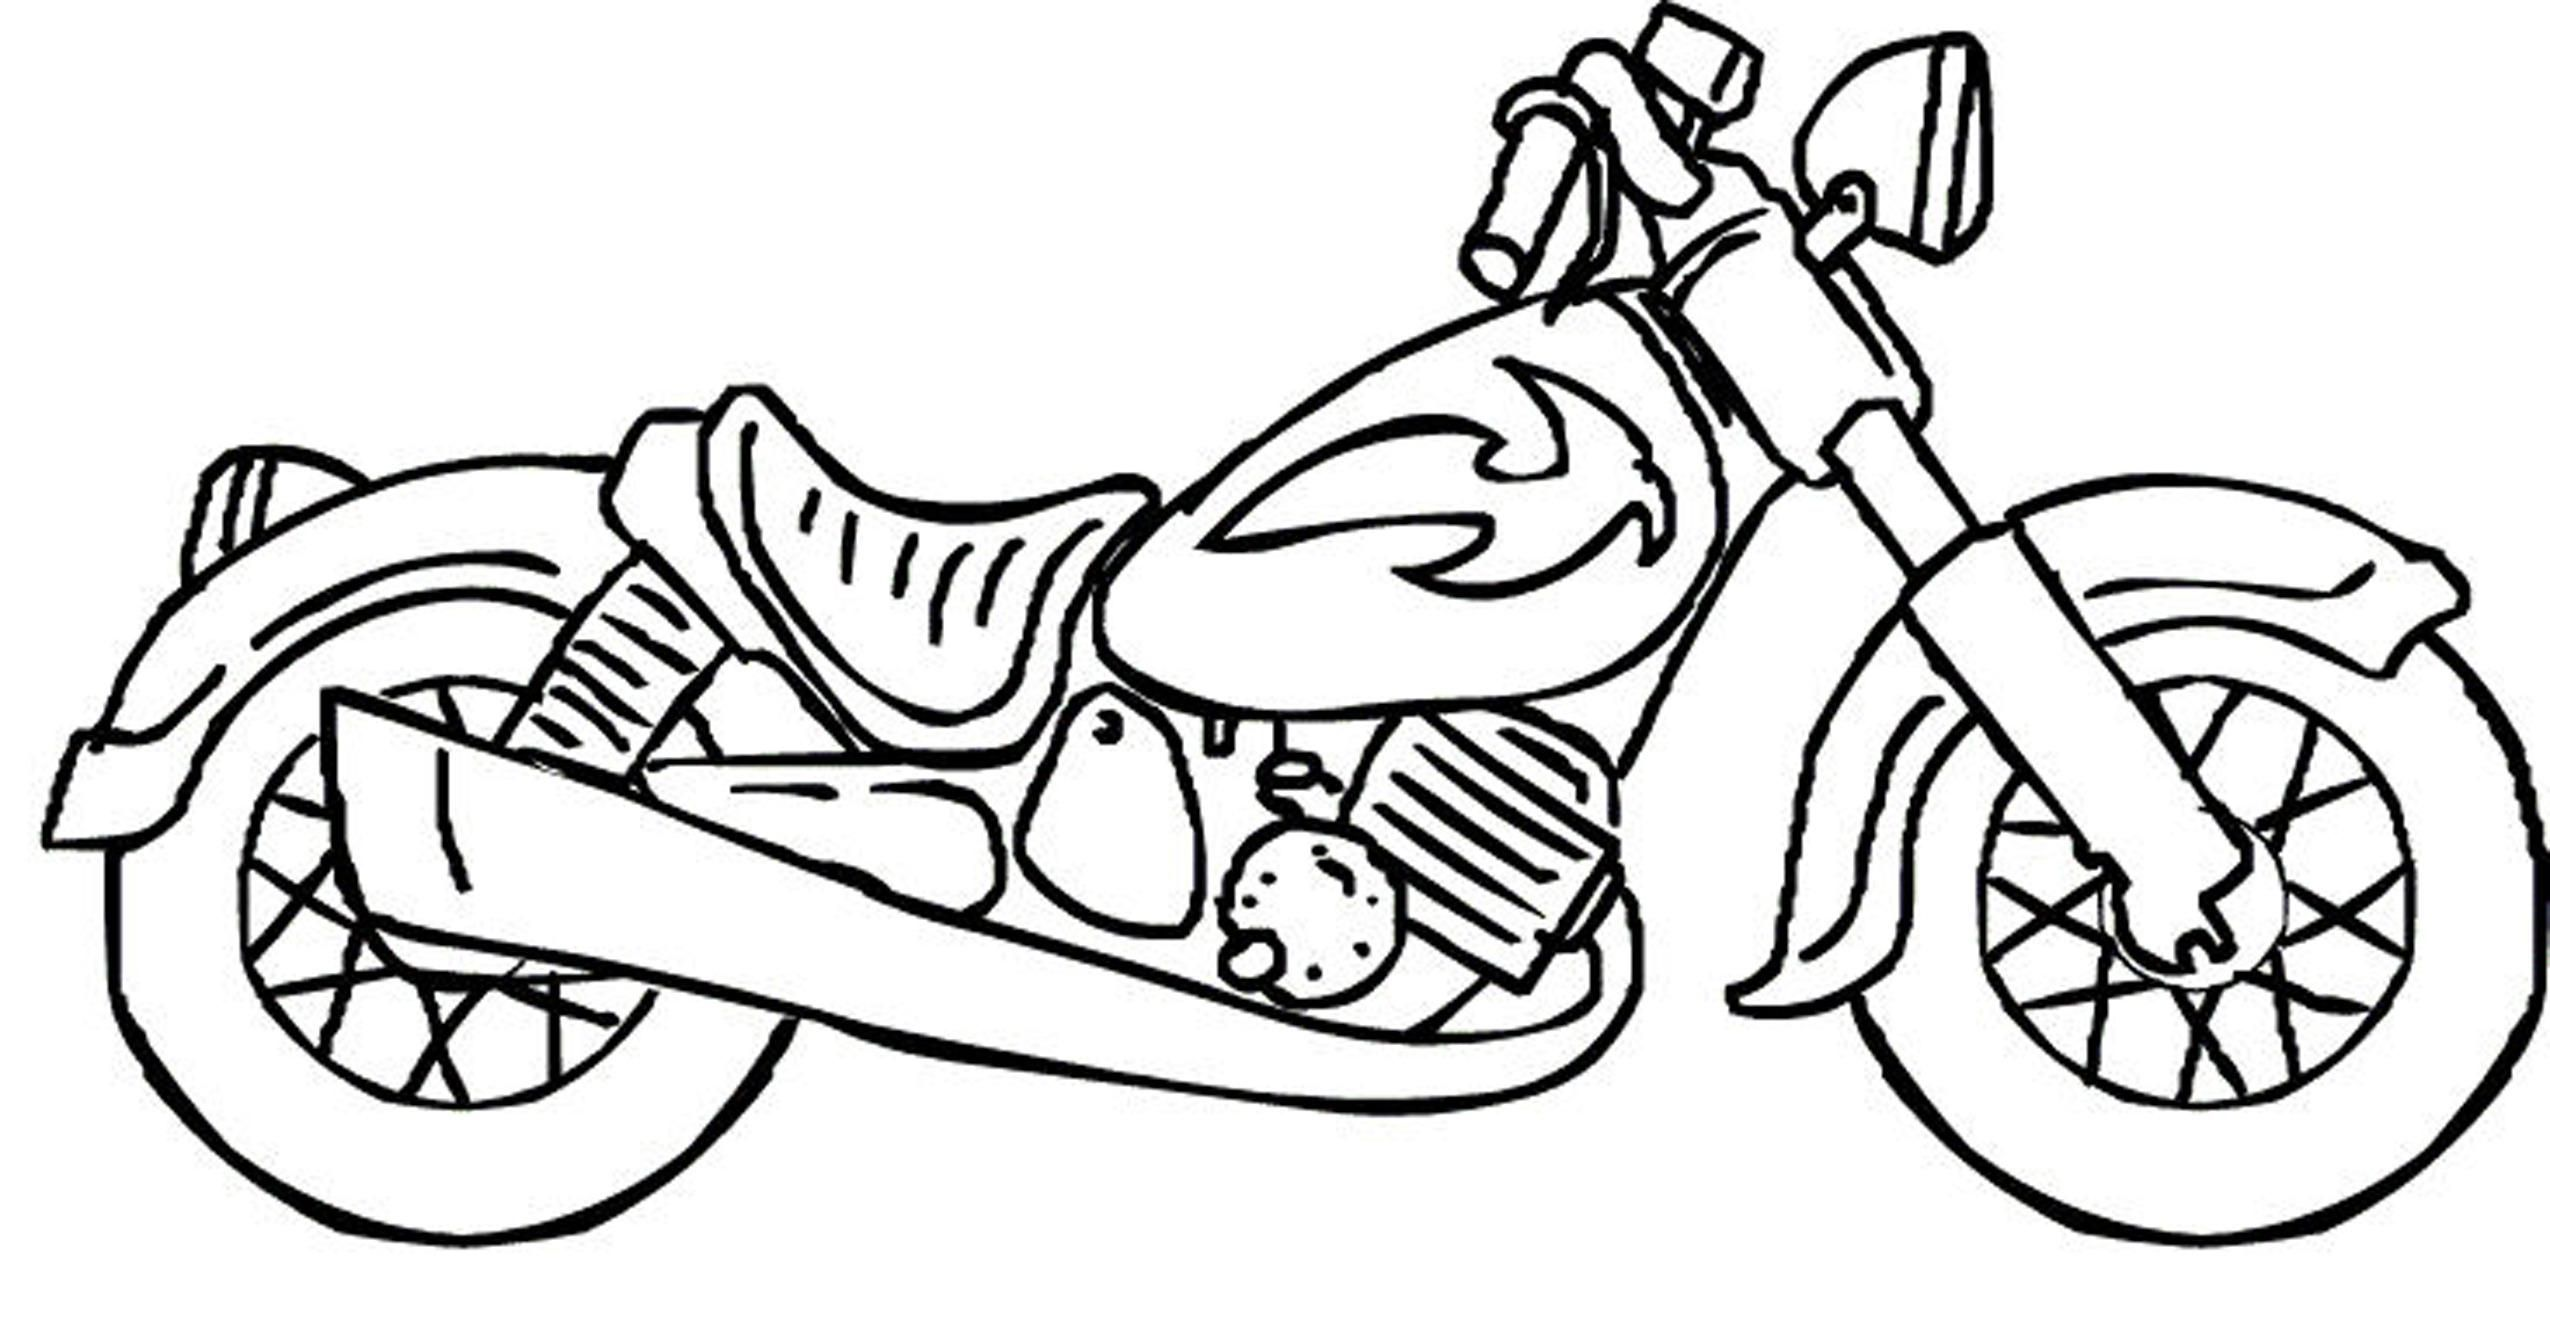 16 Coloring For Boys In 2020 Coloring Pages For Boys Coloring Sheets For Boys Cool Coloring Pages